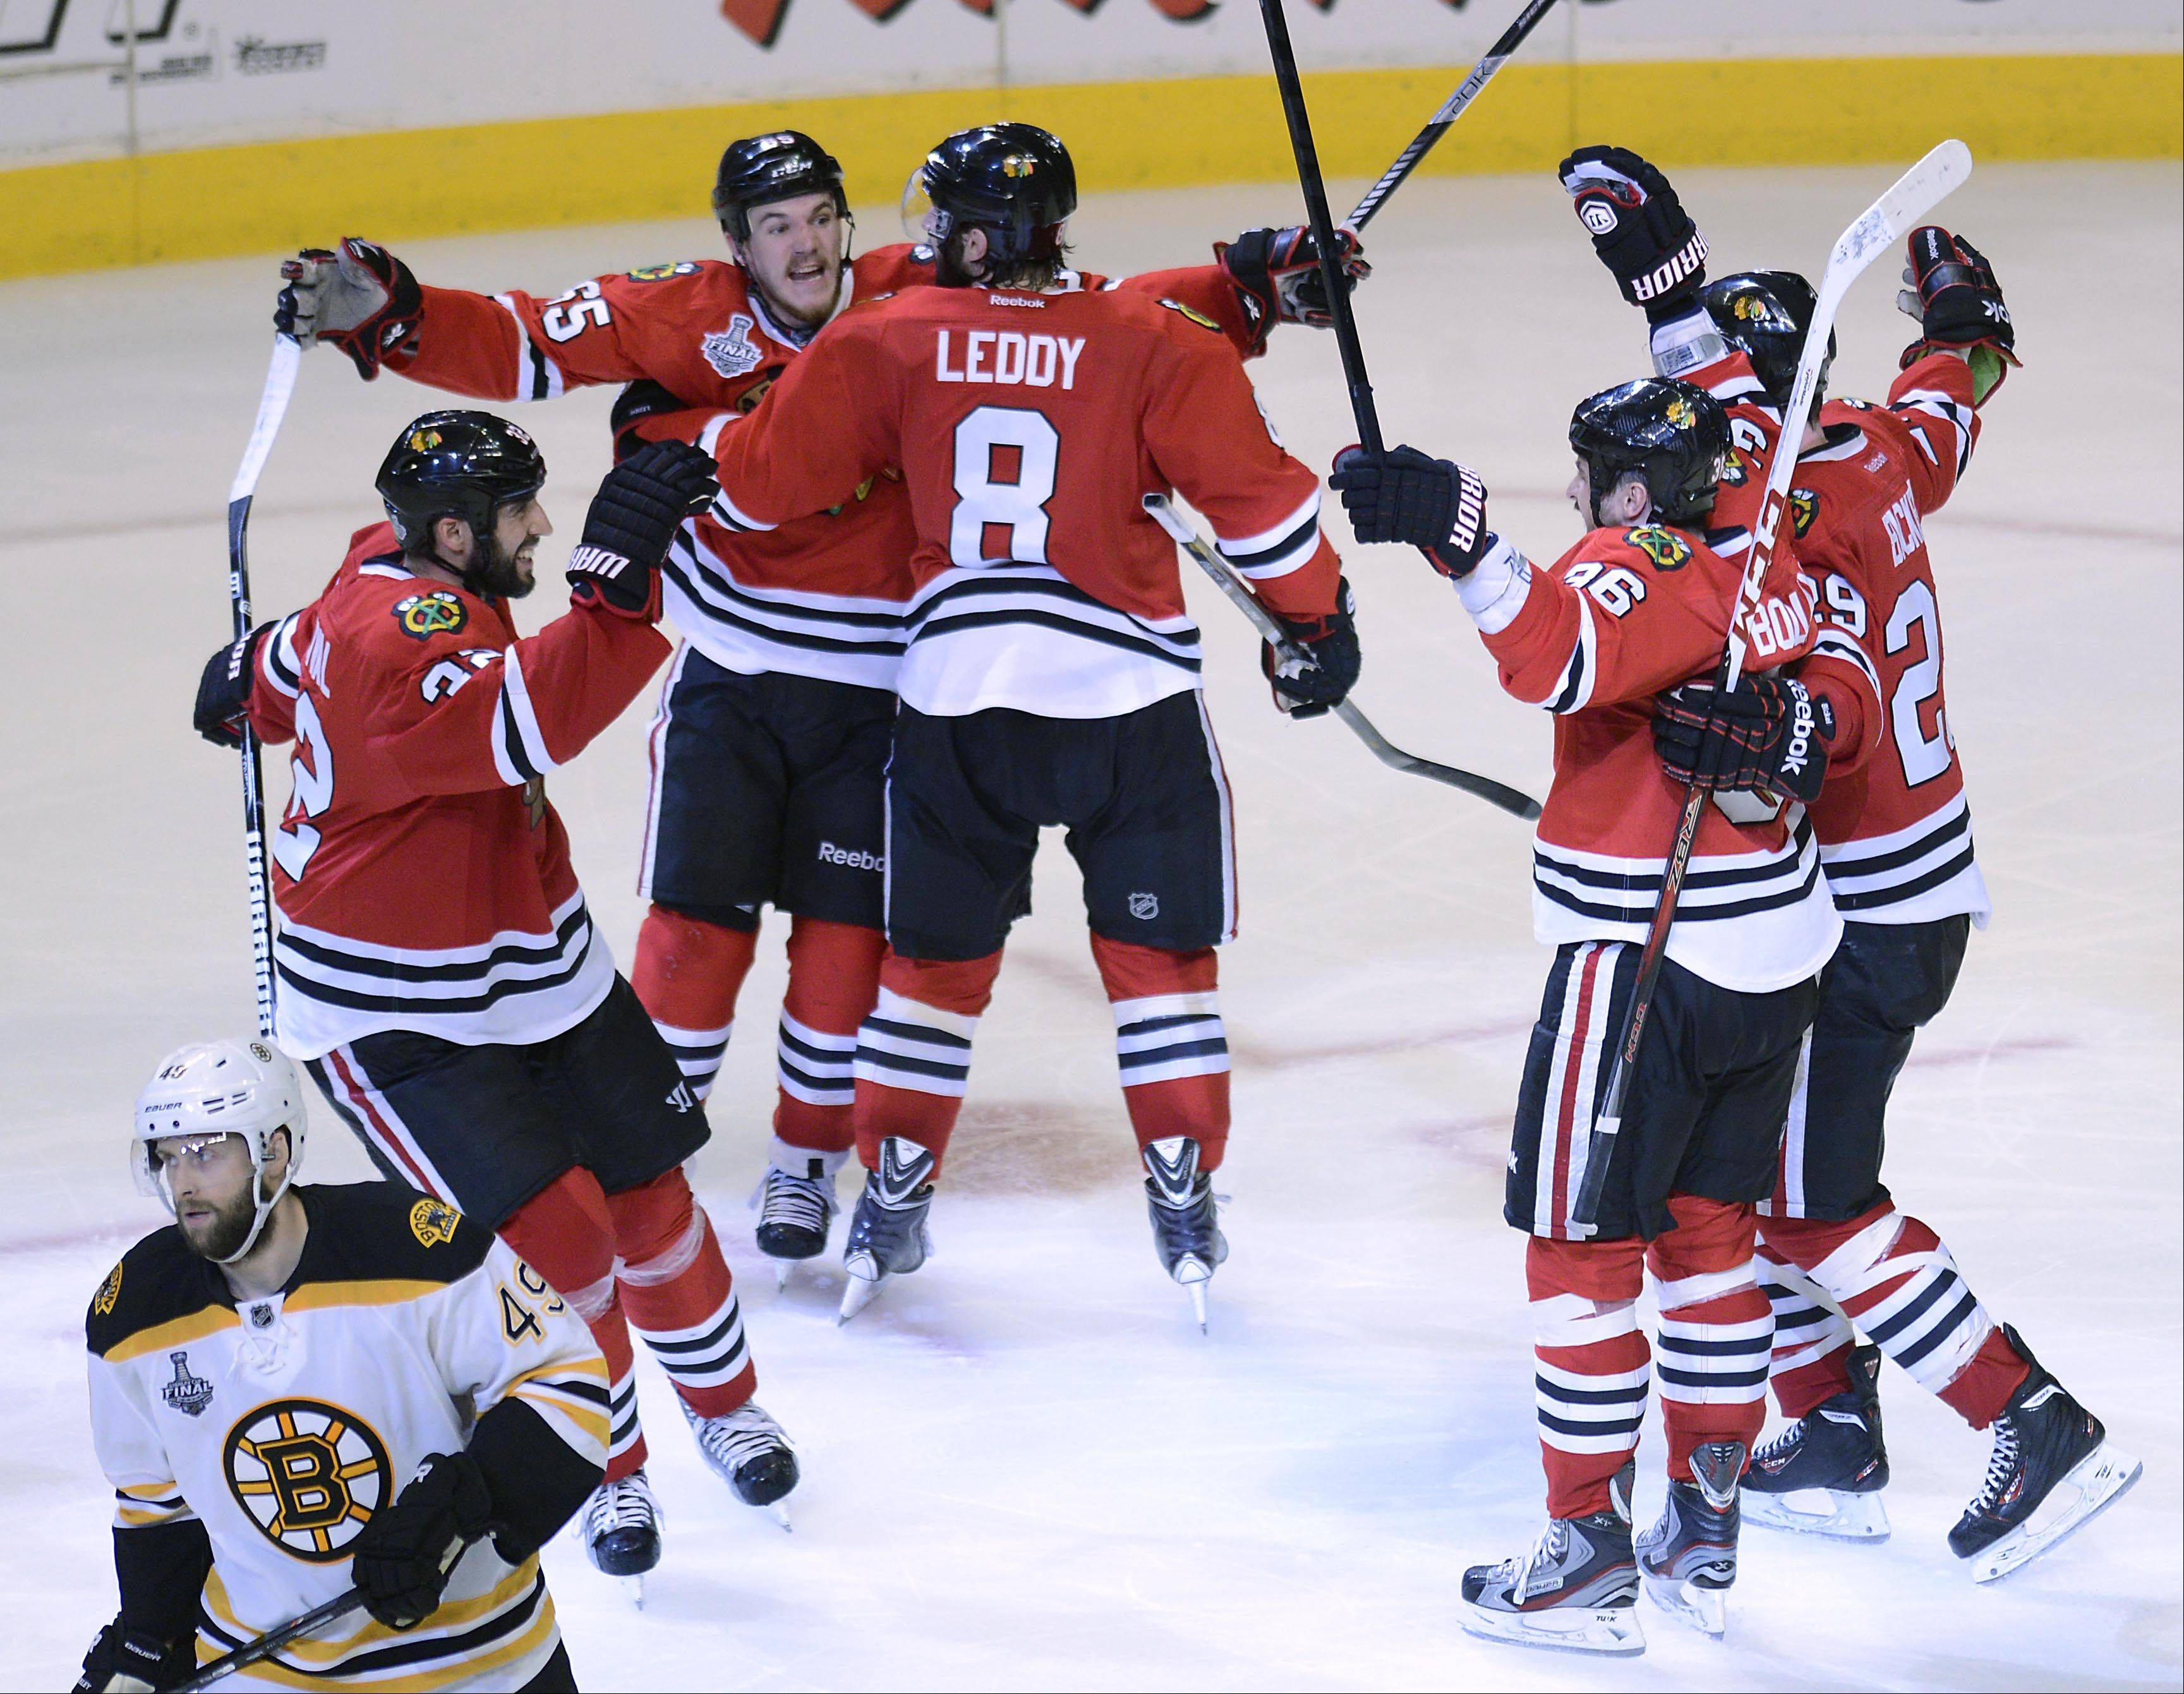 Blackhawks center Andrew Shaw is surrounded by teammates after his game-winning goal in the third overtime against the Boston Bruins during Game 1 of the Stanley Cup Finals last night at the United Center in Chicago. The goal came right at midnight, as a matter of fact.